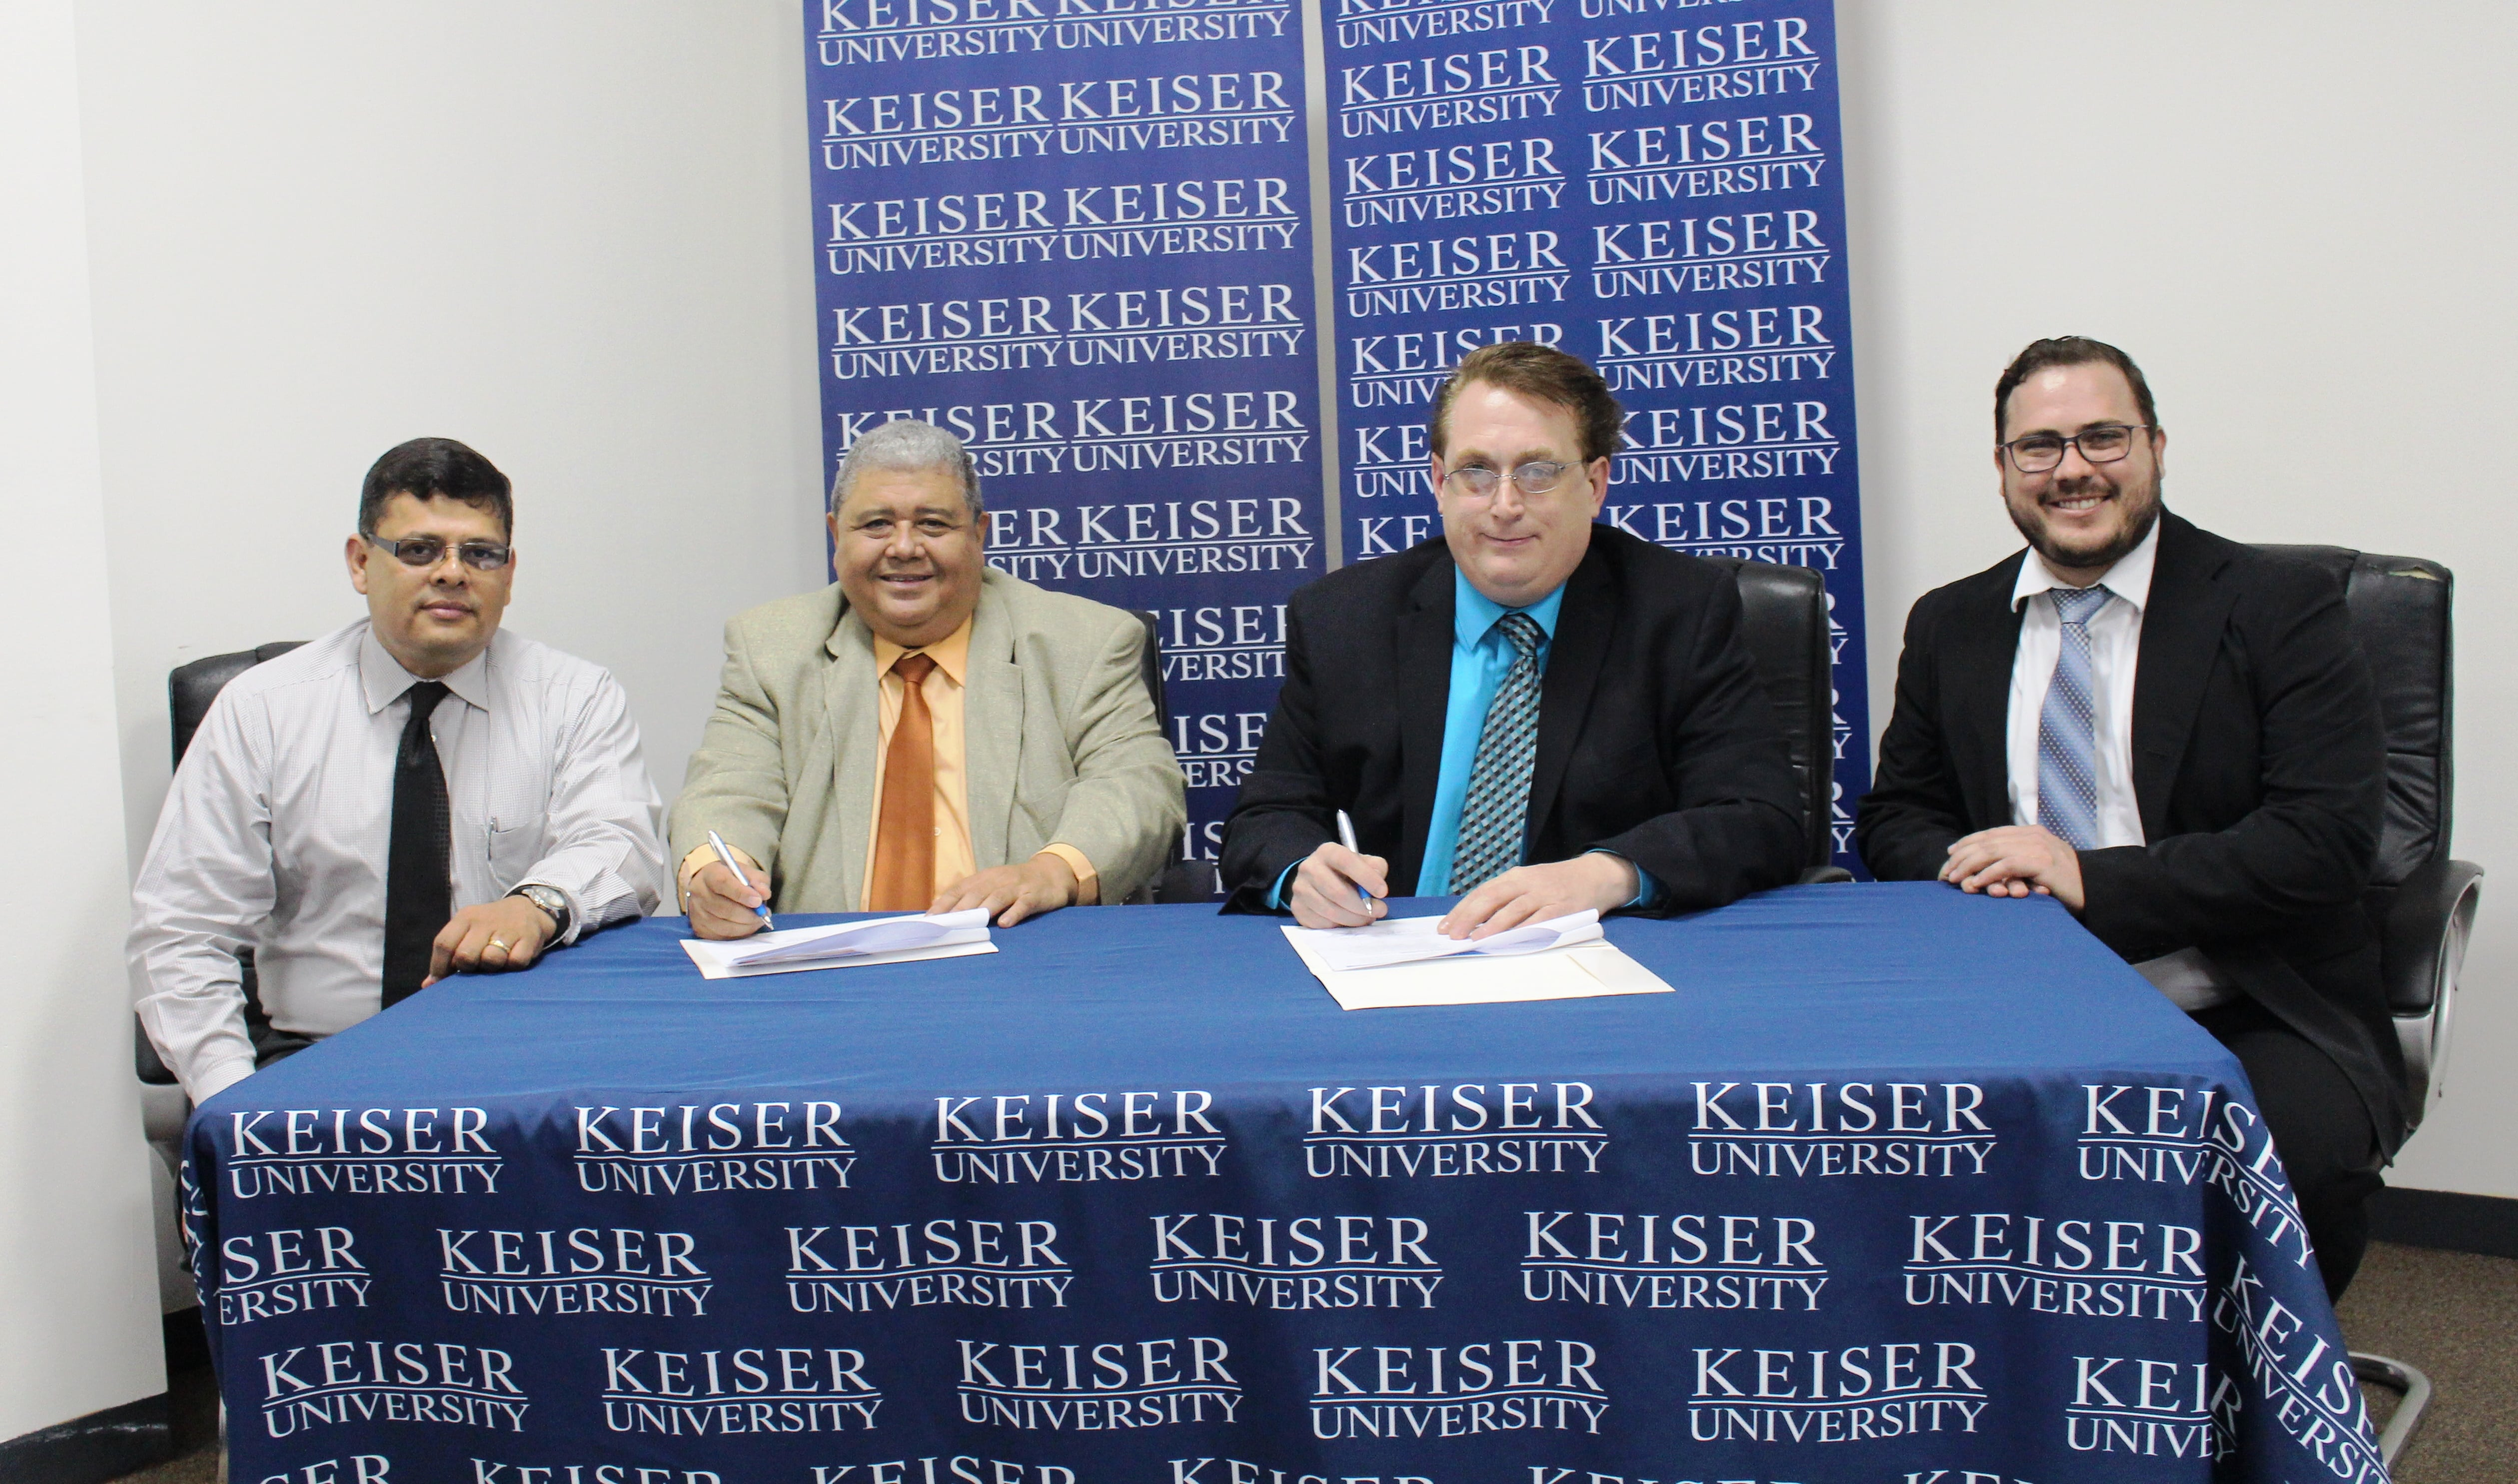 Keiser University's Latin American Campus celebrated the official launching of the Spanish to English Academic Learning Program (SEAL)